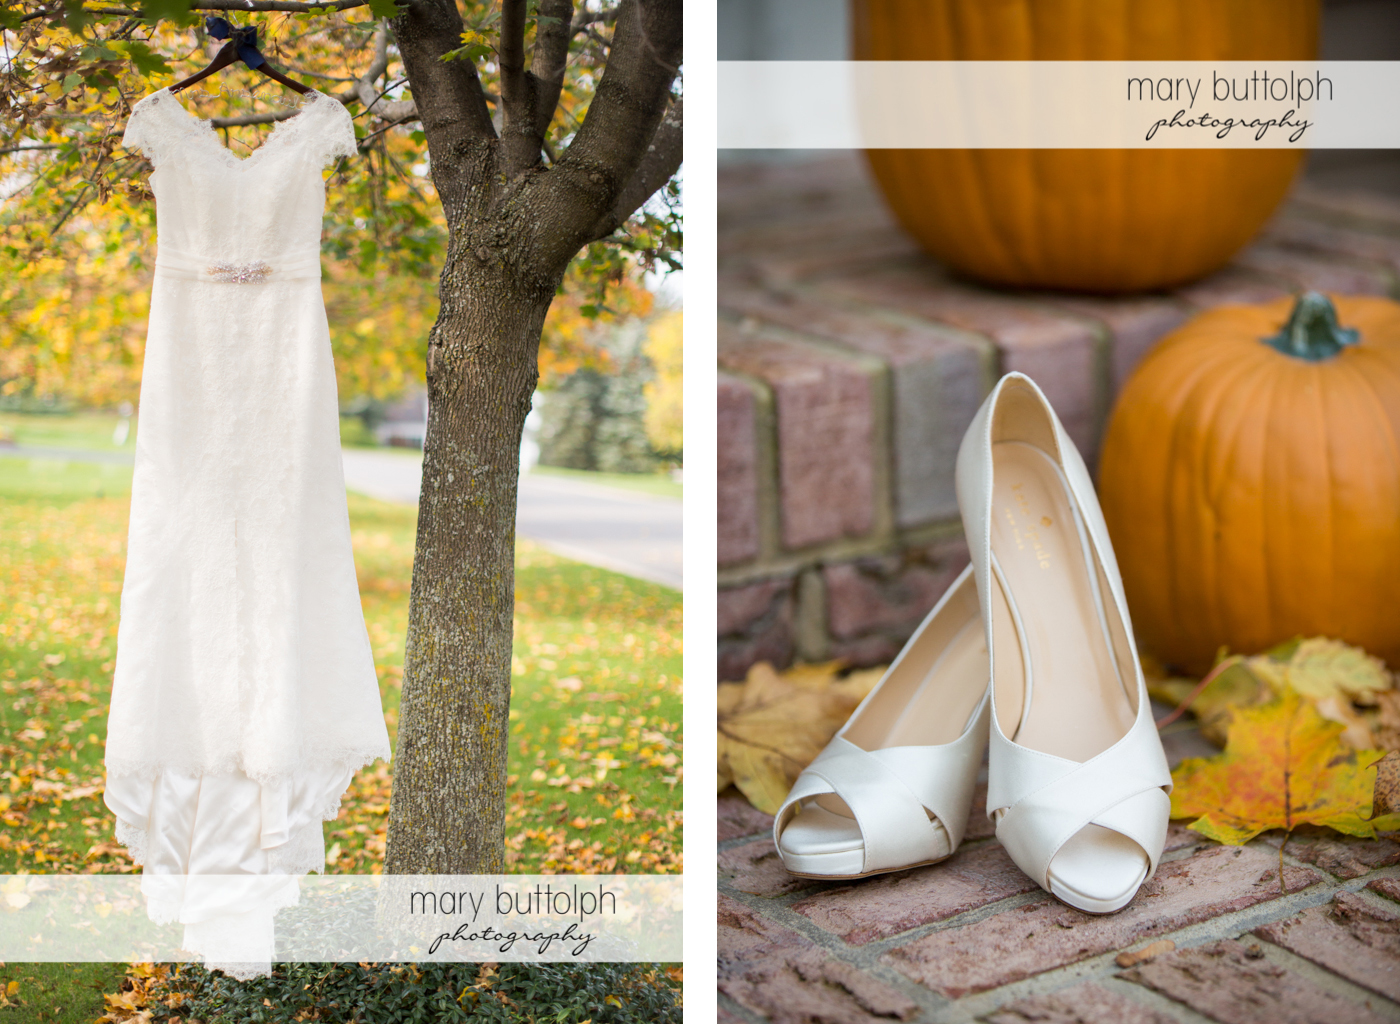 Bride's wedding dress hangs from a tree while her wedding shoes are near pumpkins at Traditions at the Links Wedding